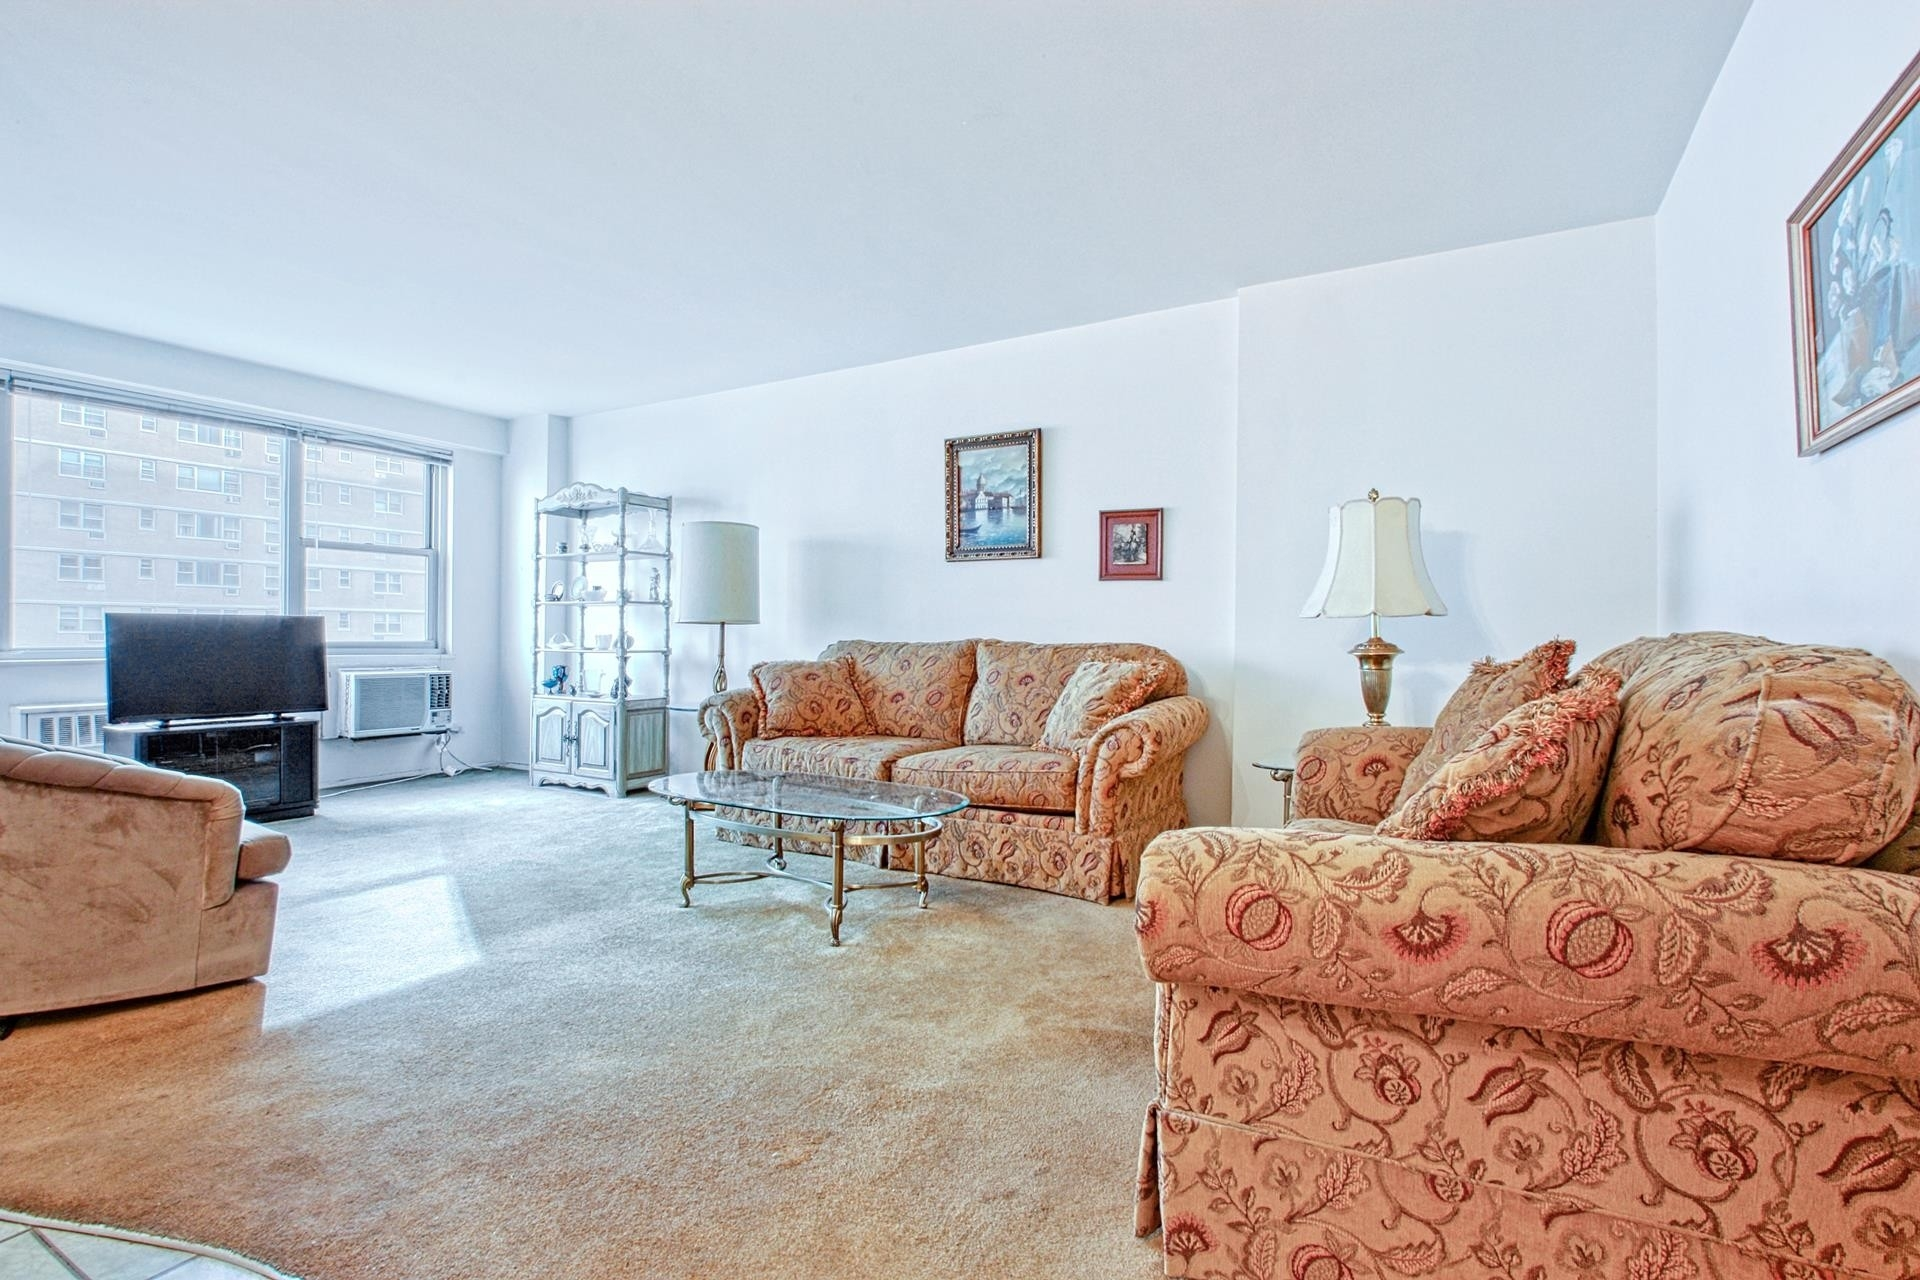 Co-op Properties for Sale at 2942 W 5TH ST , 10F Coney Island, Brooklyn, NY 11224